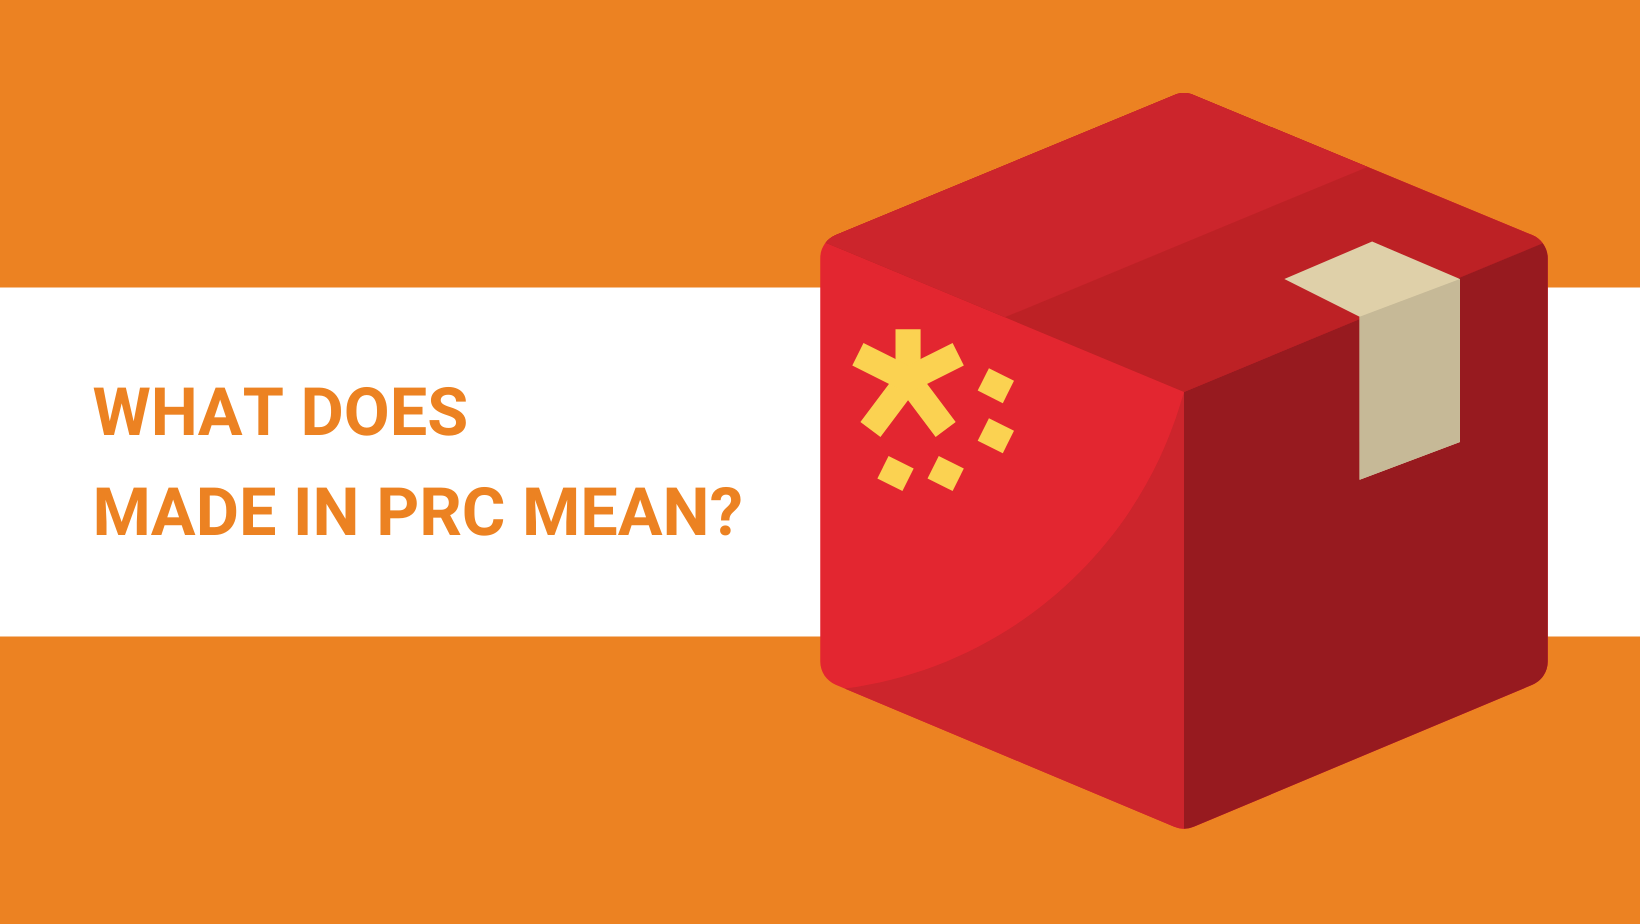 Made in PRC: What Does It Mean?